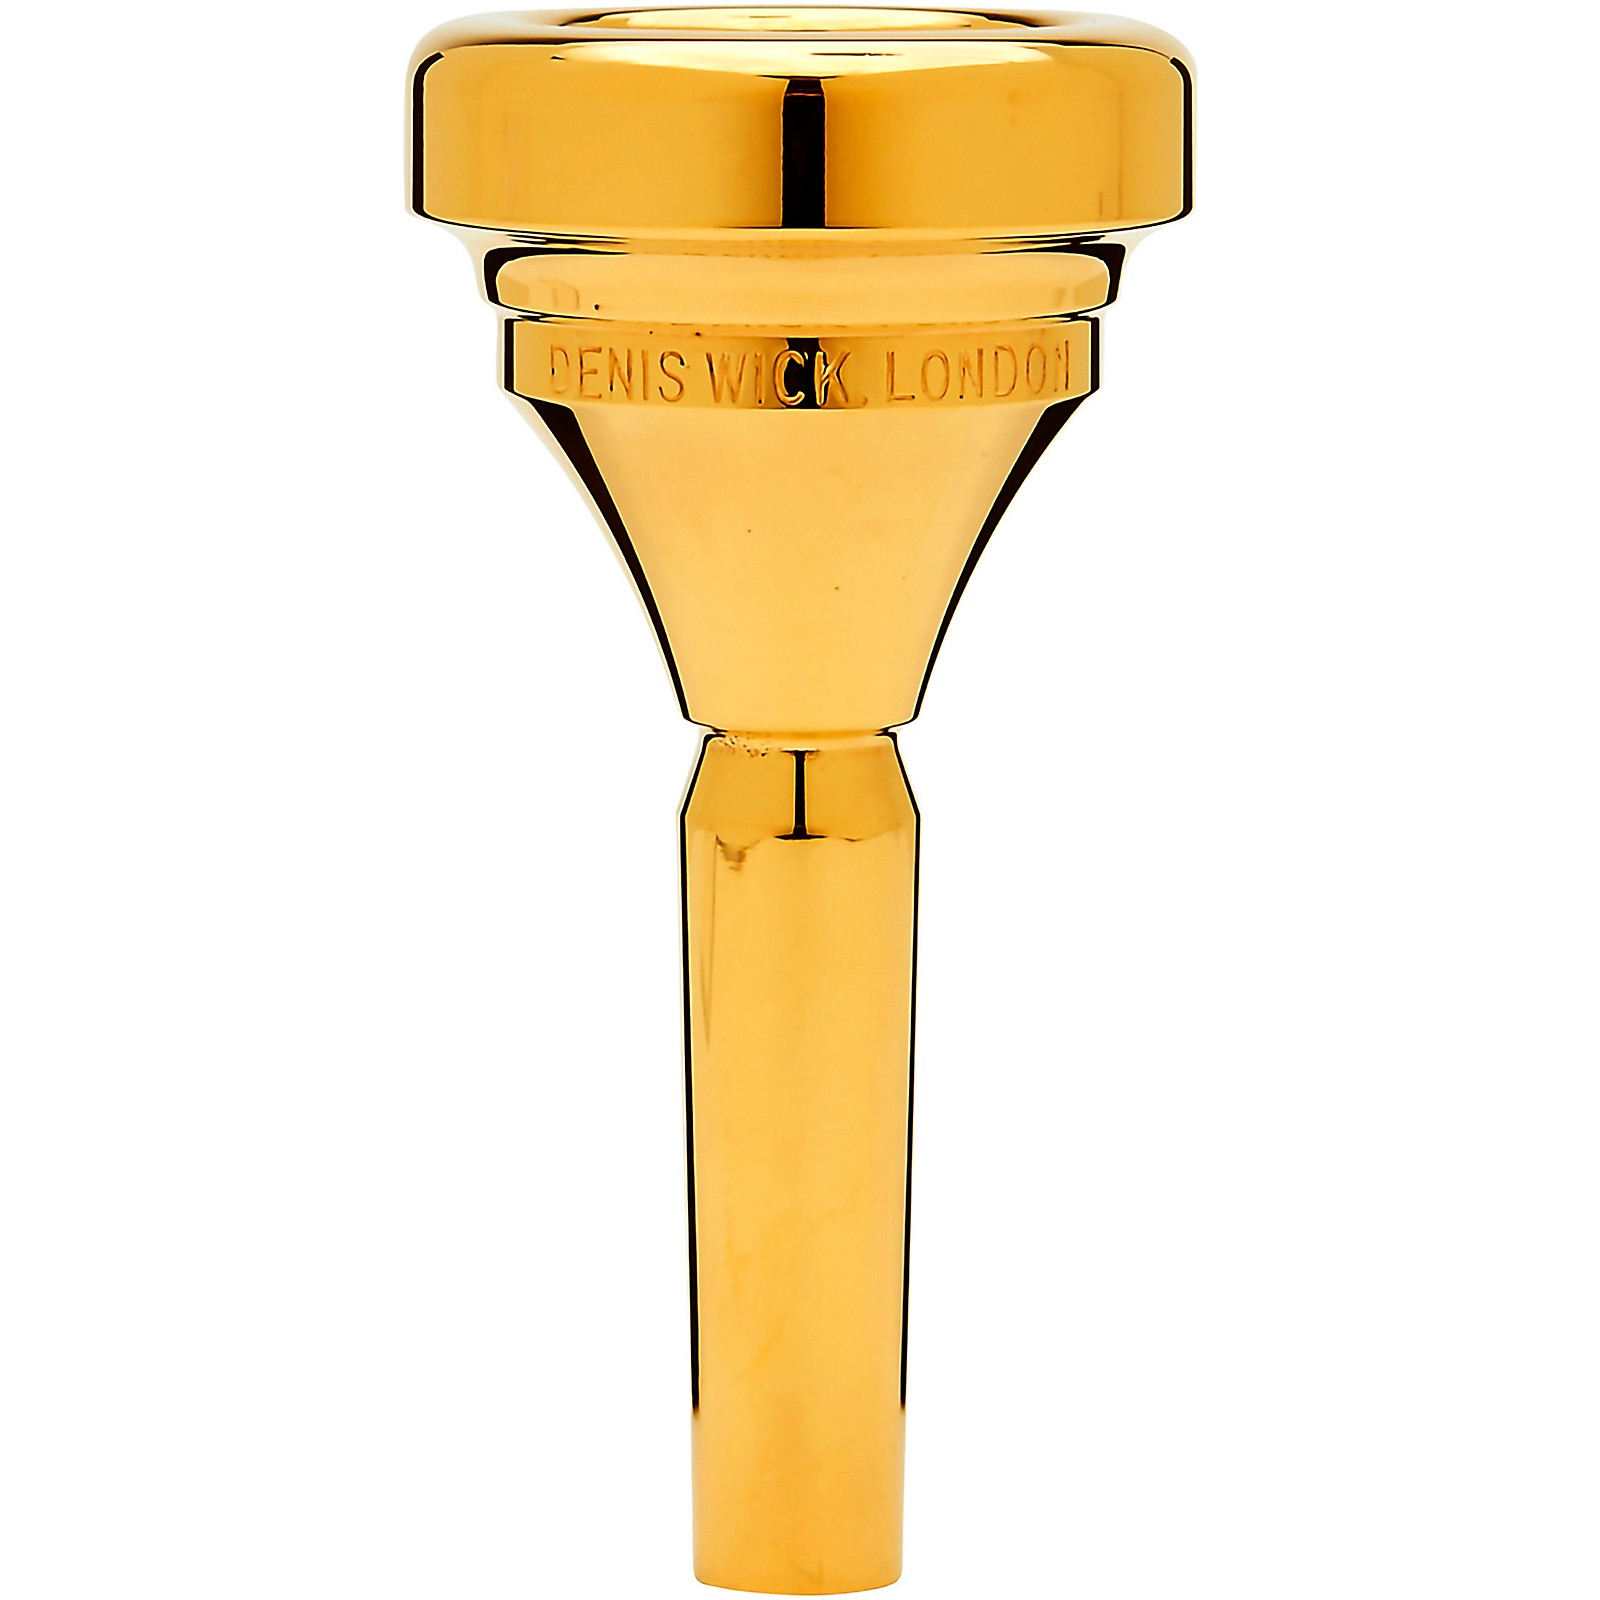 Denis Wick DW4286 Classic Series Tuba Mouthpiece in Gold